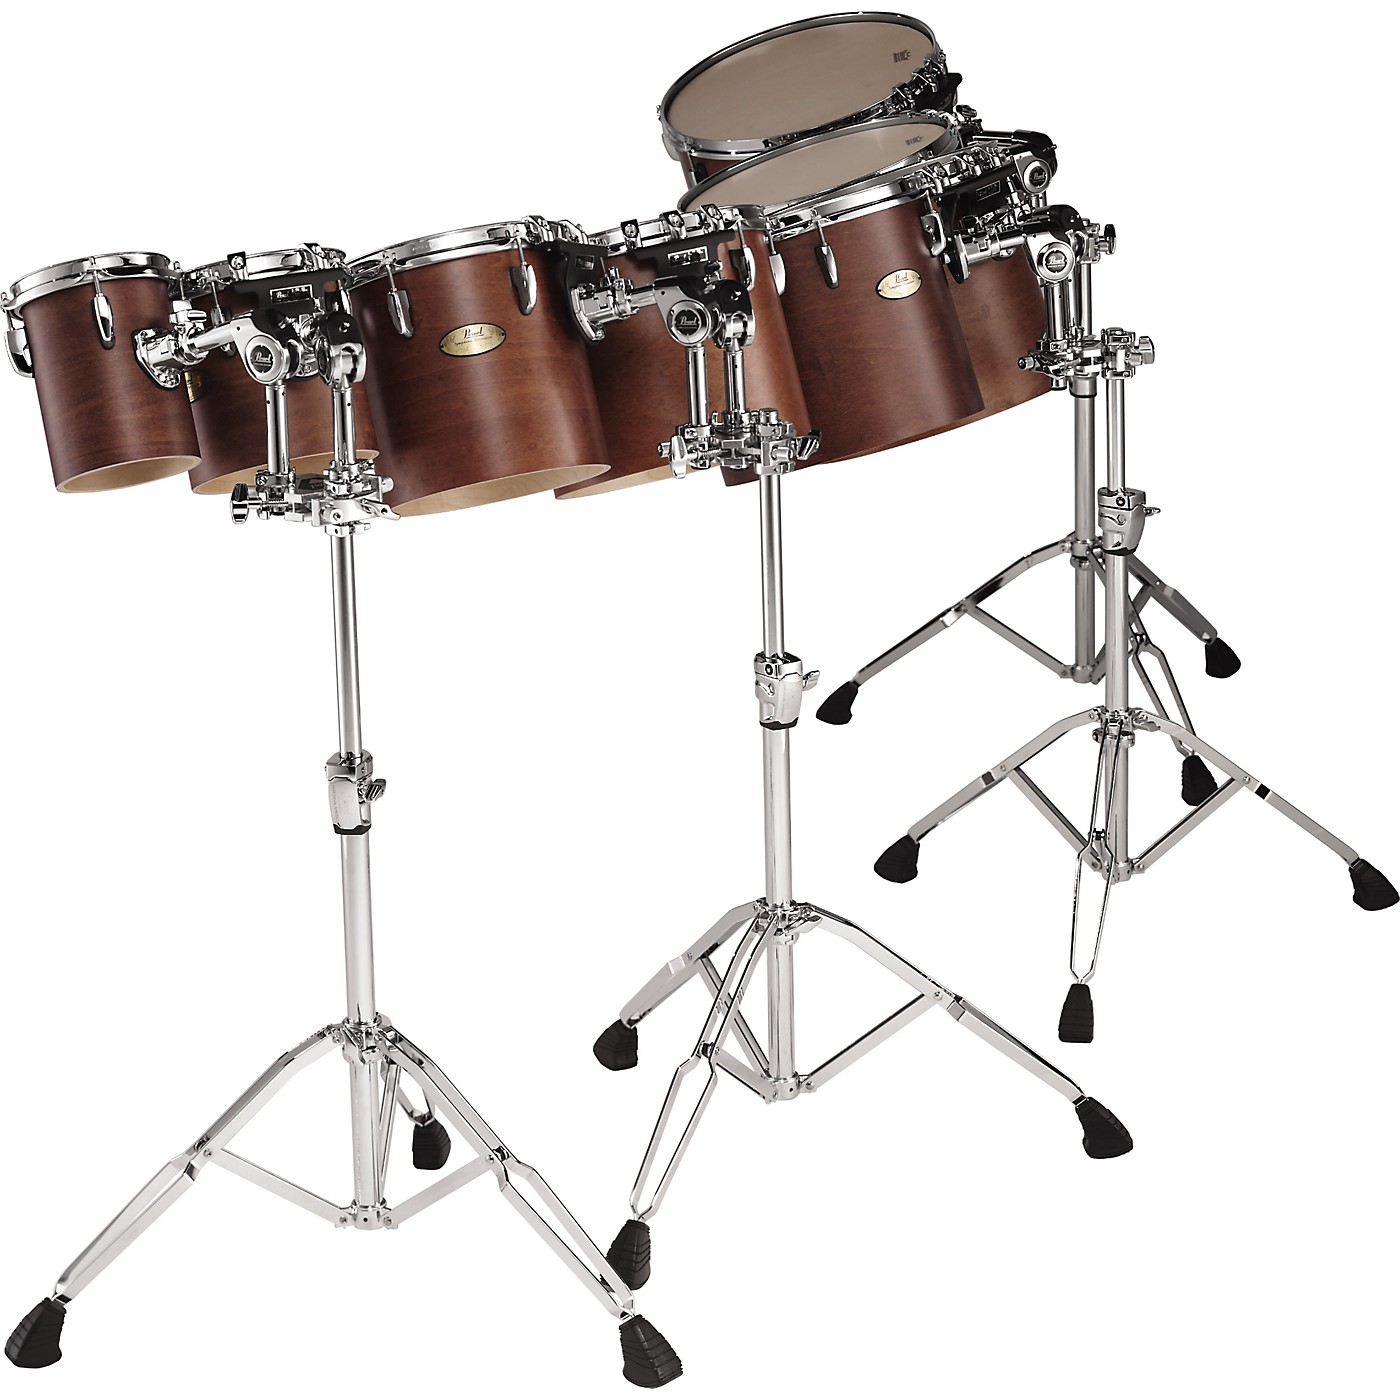 Pearl Symphonic Series Single-Headed Concert Tom Concert Drums thumbnail